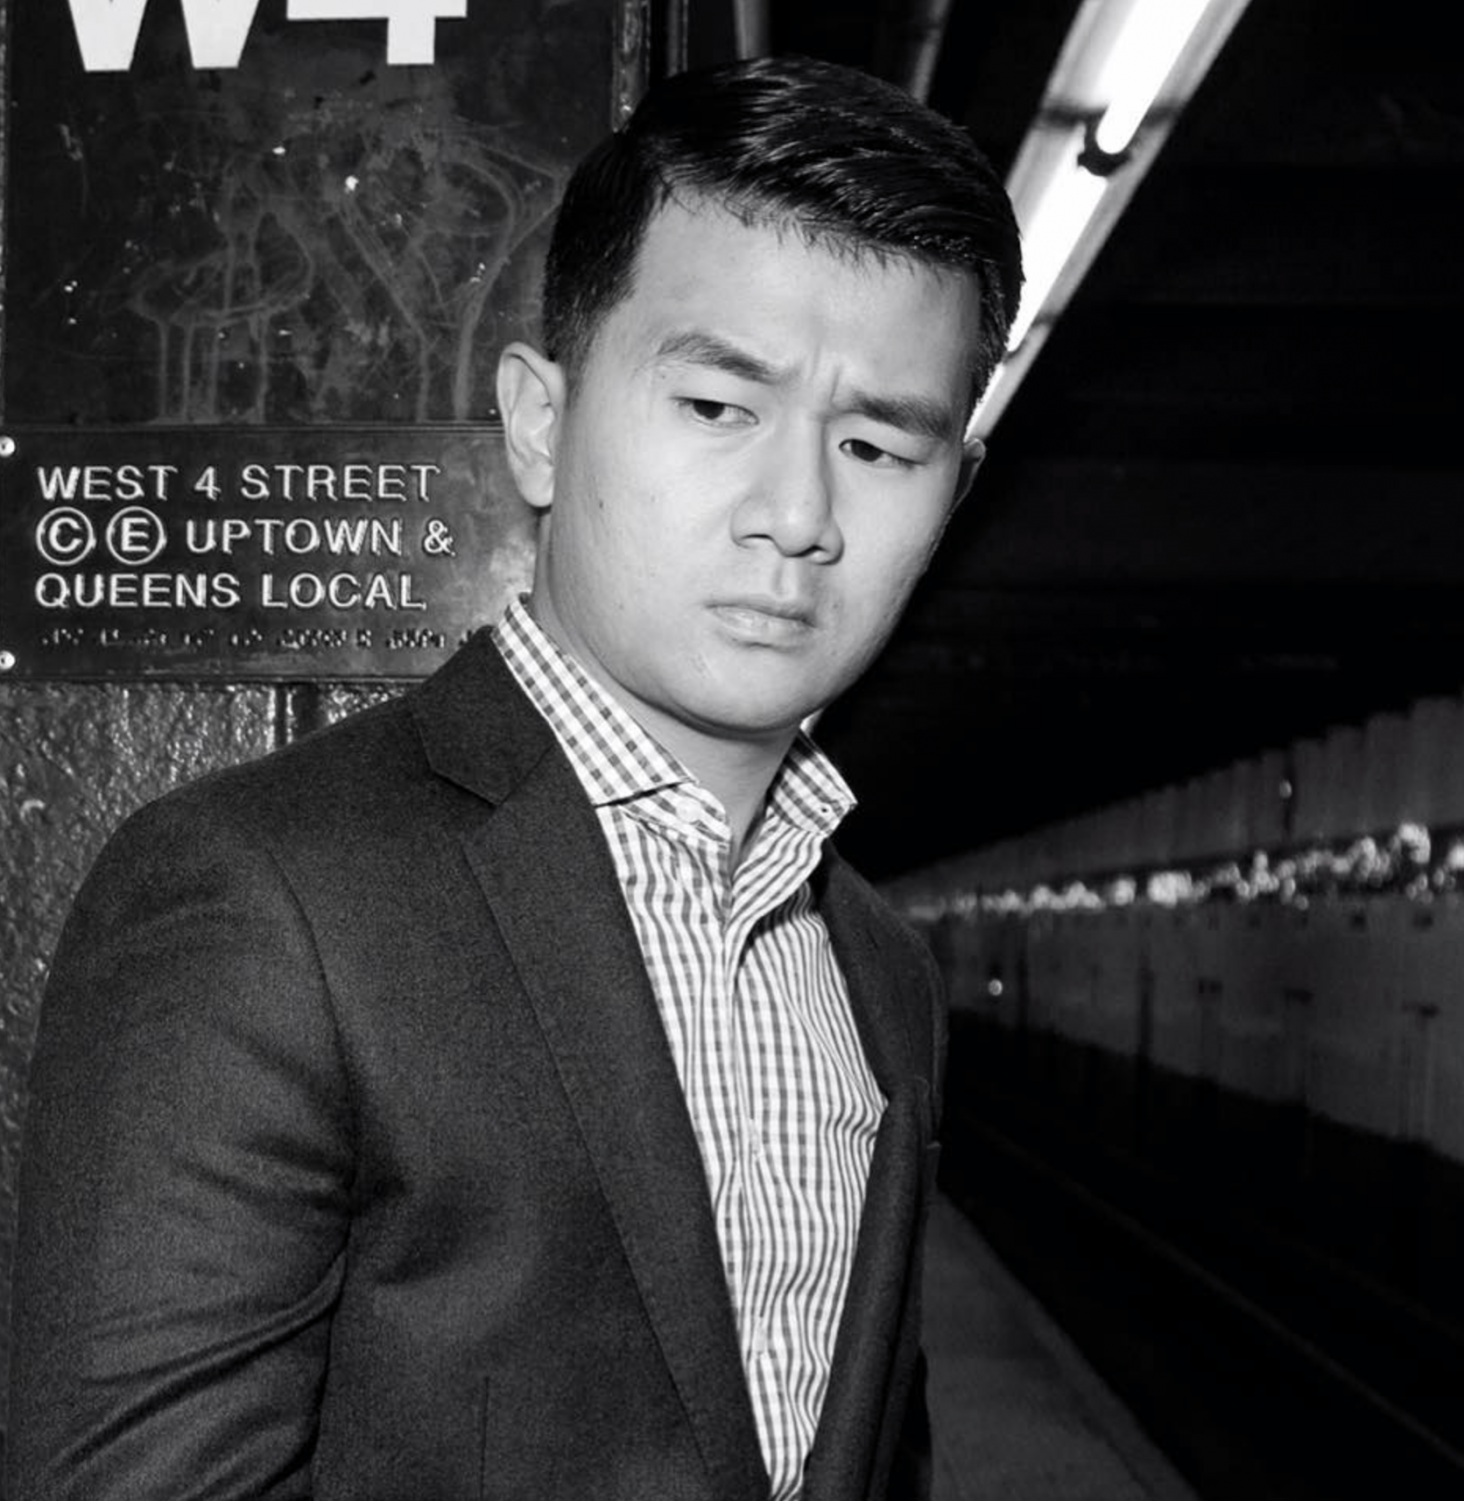 """Ronny Chieng, the Senior Correspondent for the """"Daily Show"""", was a guest comedian on Oct. 26 for the NYU Program Board at Rosenthal Pavilion. Chieng made comedy and politics go hand in hand, keeping the audience engaged during his performance."""